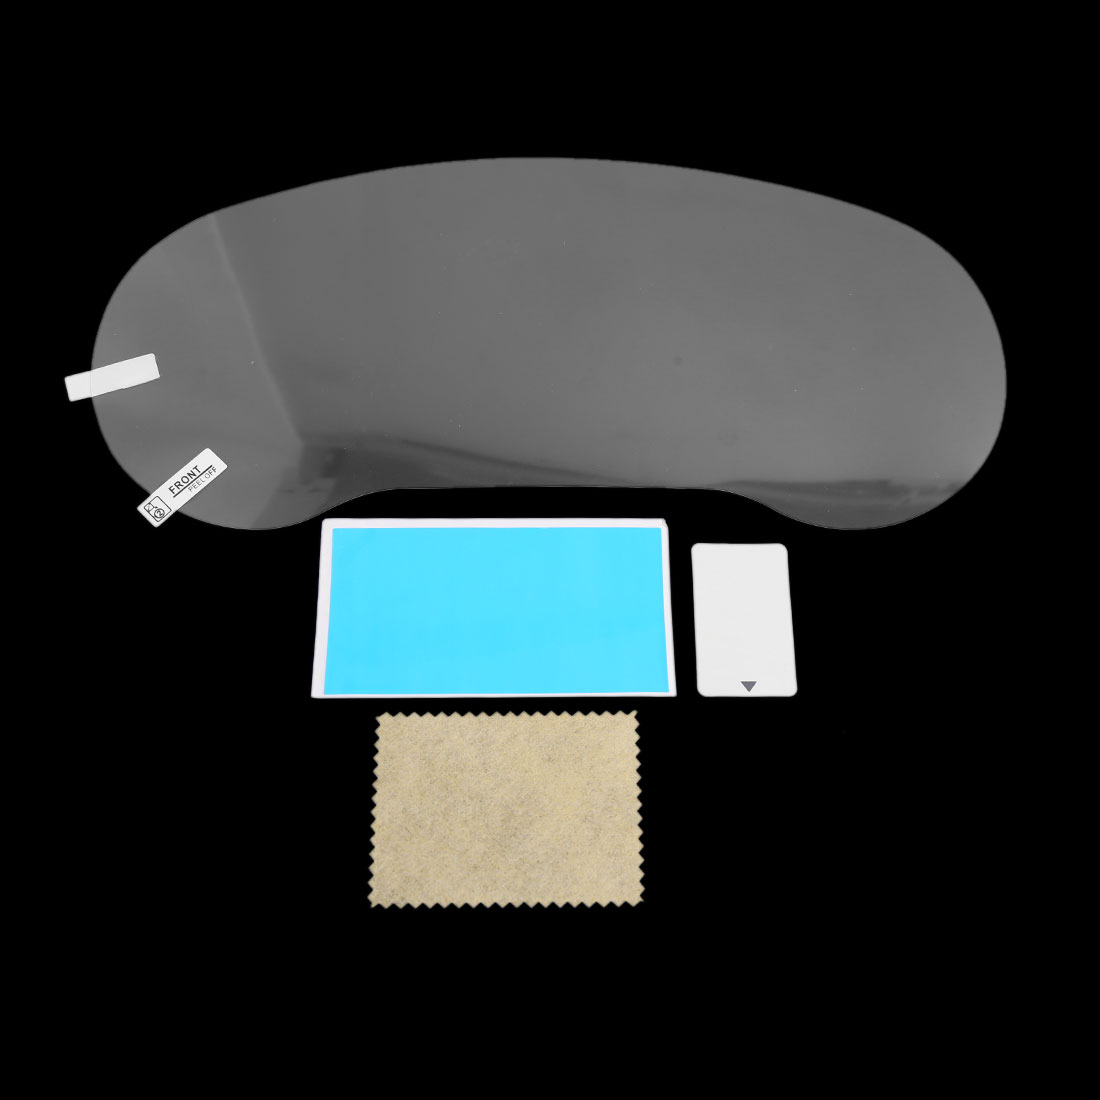 Clear Anti-Scratch Car Dashboard Protective Film for 2012-2014 VW New Sagitar - image 1 of 2